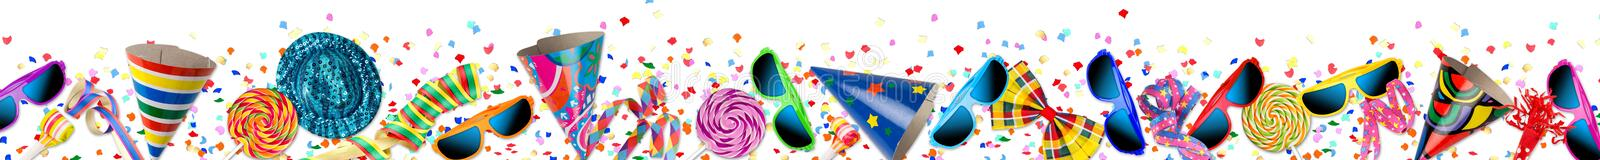 Colorful party carnival birthday celebration background stock image